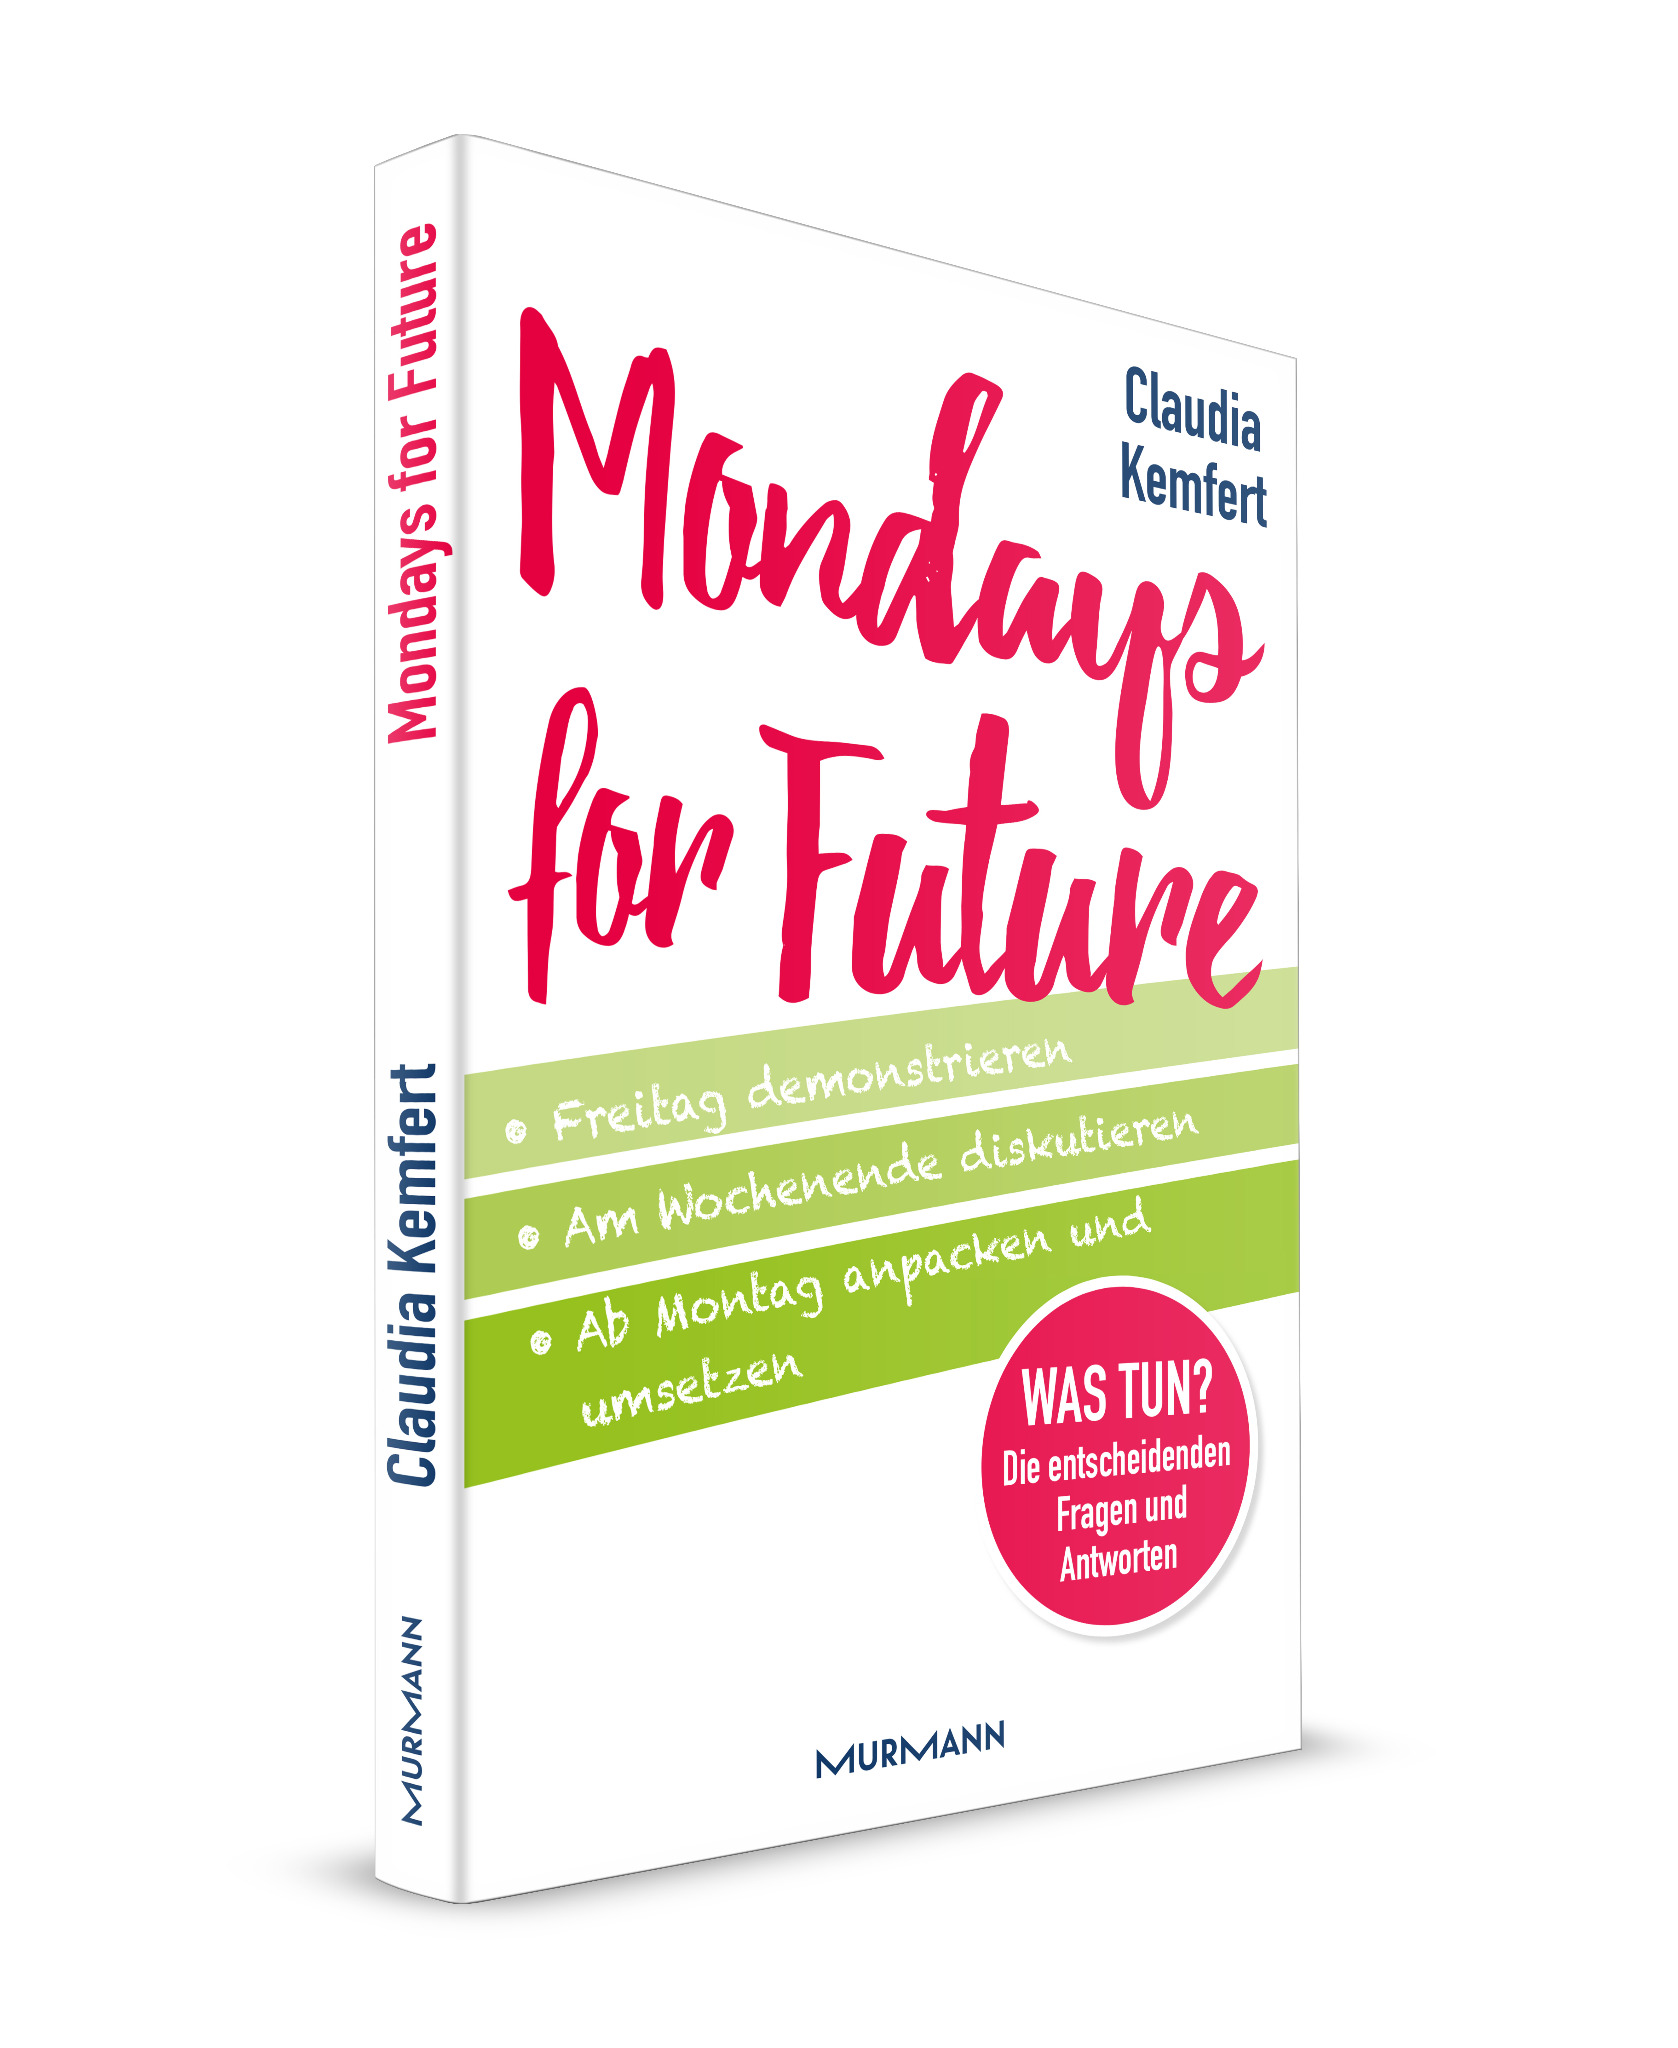 *Mondays for Future / Claudia Kemfert